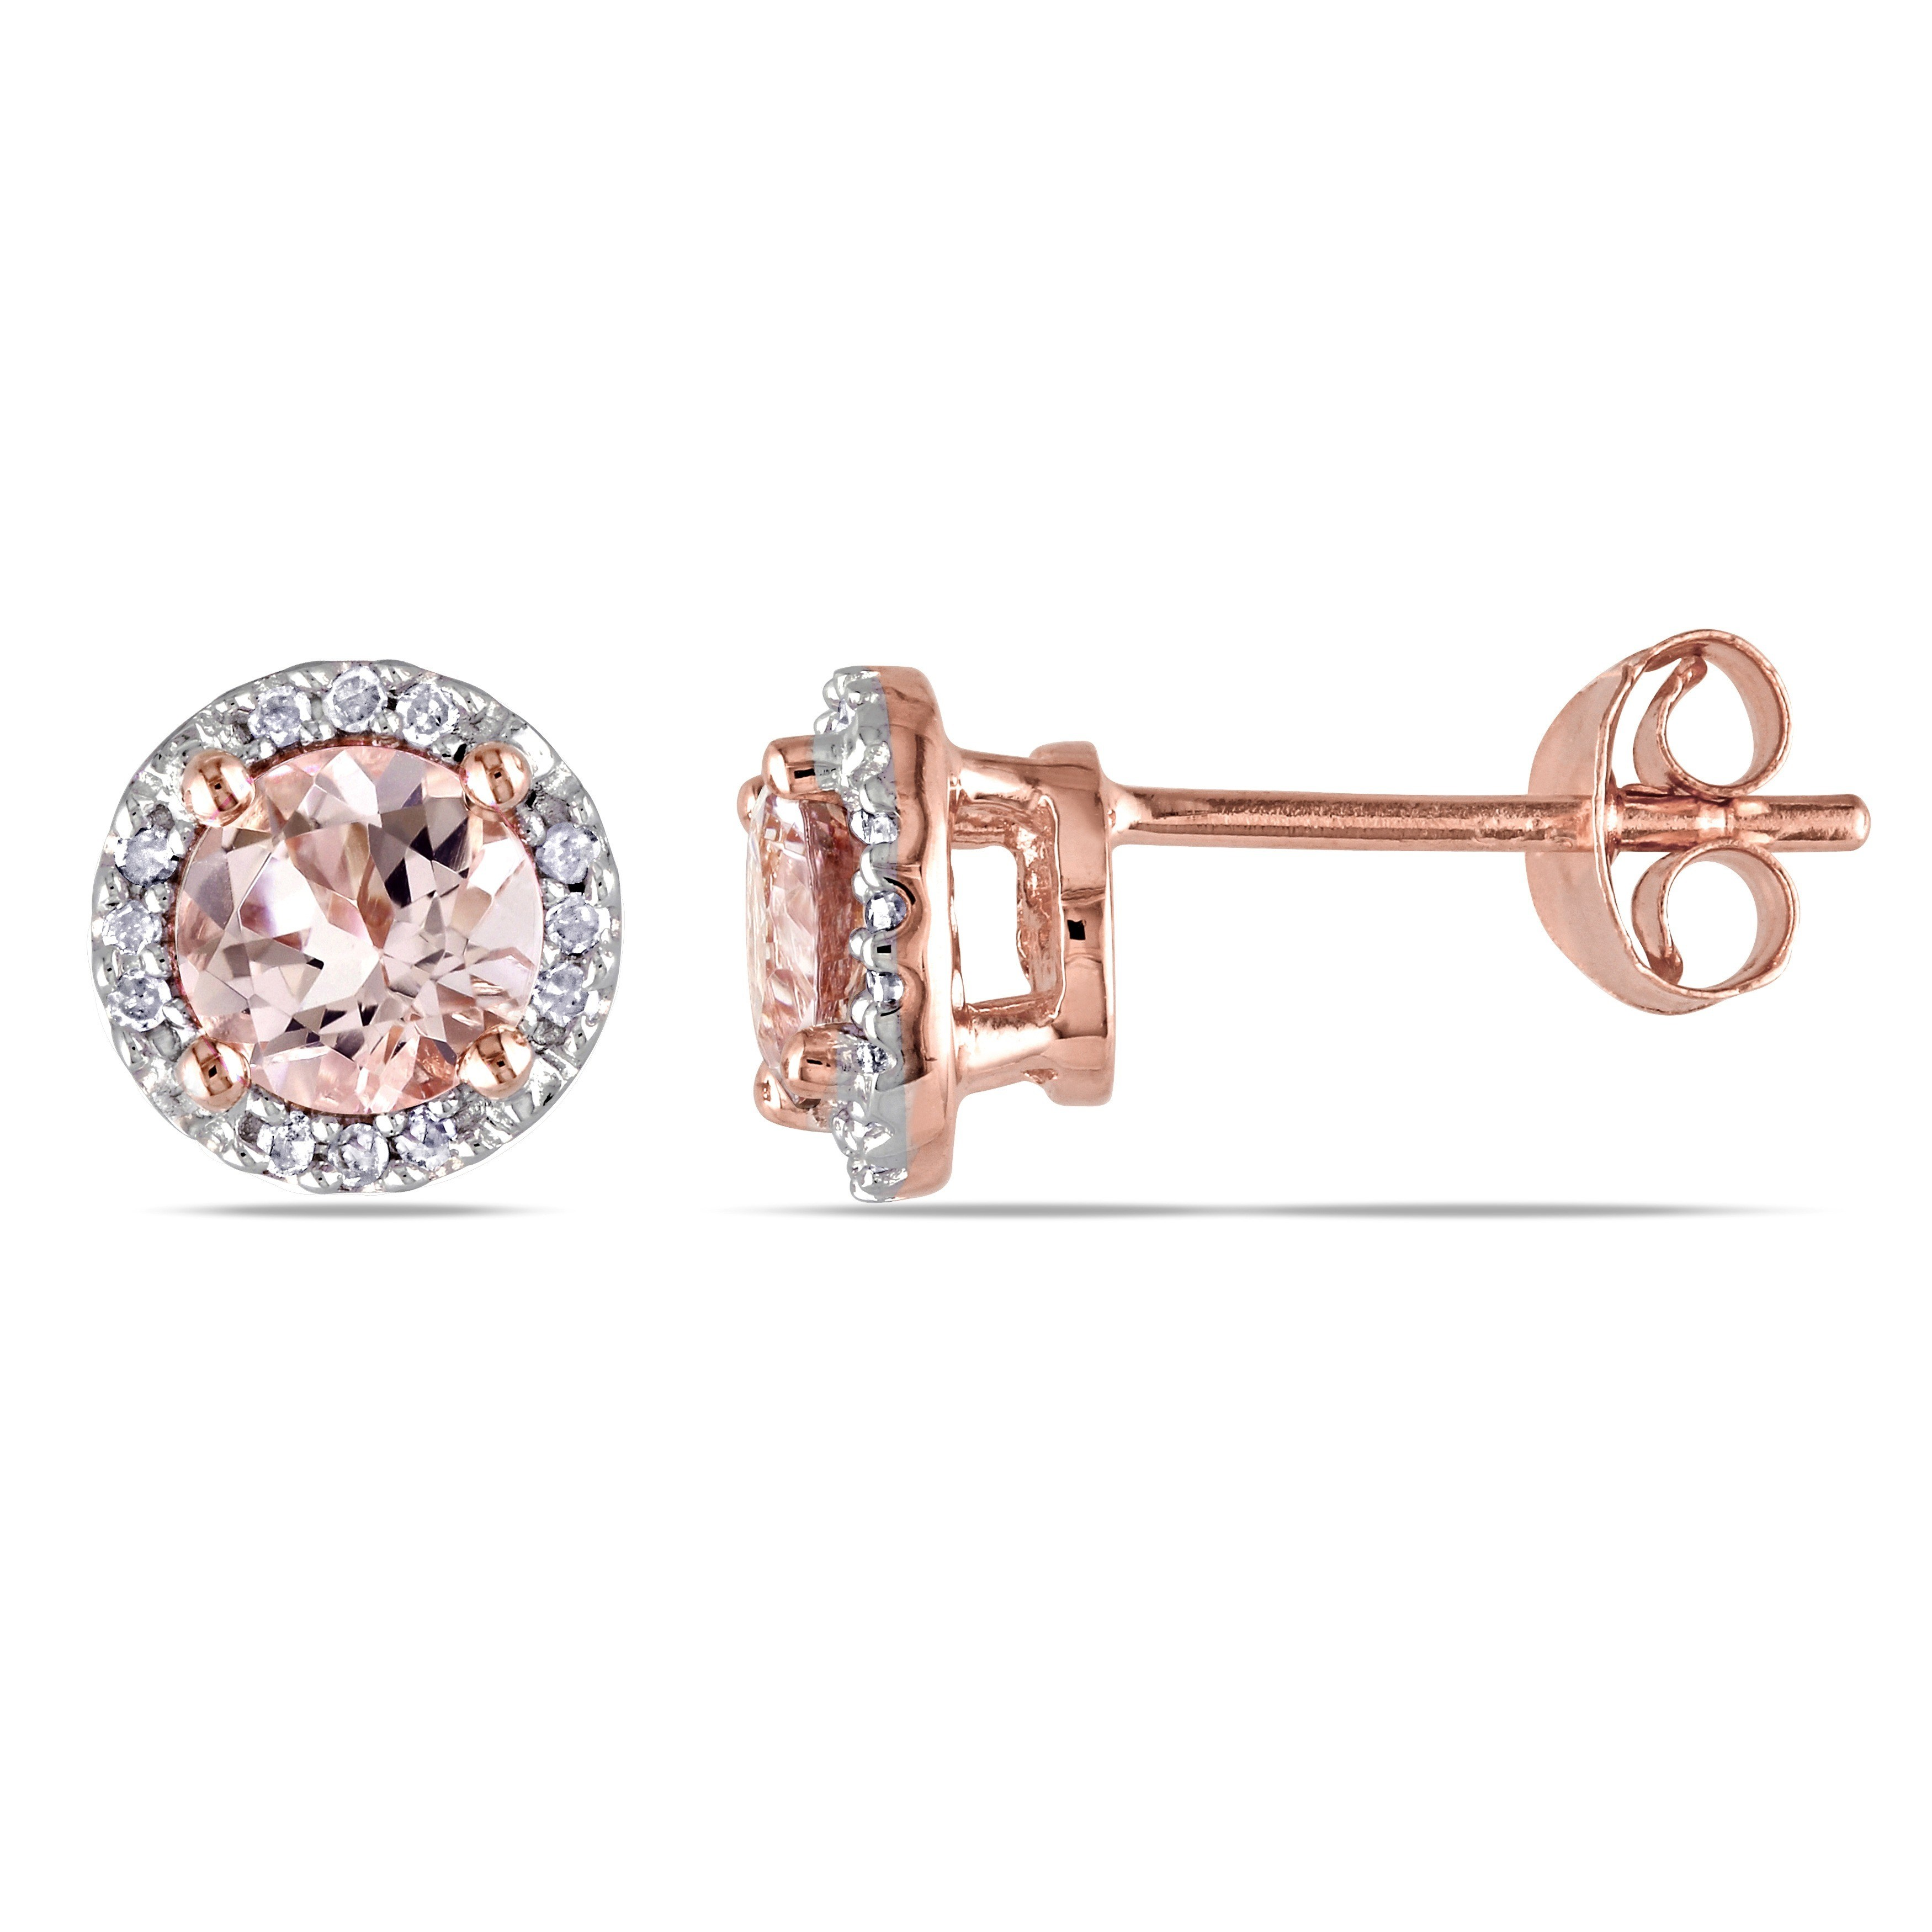 57a7dd80d1405 Rose Goldplated Sterling Silver Morganite and Diamond Accent Halo Stud  Earrings